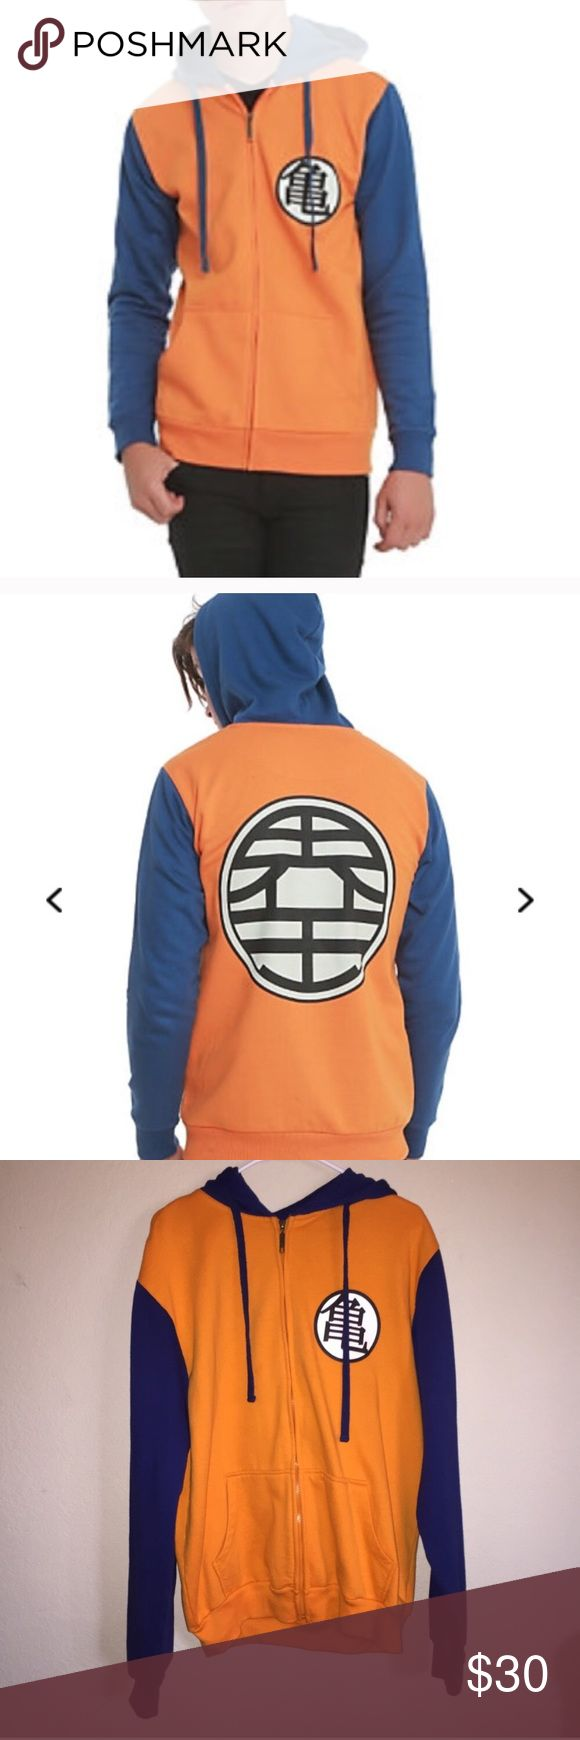 Dragon Ball Z Zip up Hoodie XL from Hot Topic This was my son-in-law's he got it as a gift but only wore it once. Washed and perfect condition. Originally $50 according to Hot Topic's site. Offers welcome. Hot Topic Sweaters Zip Up